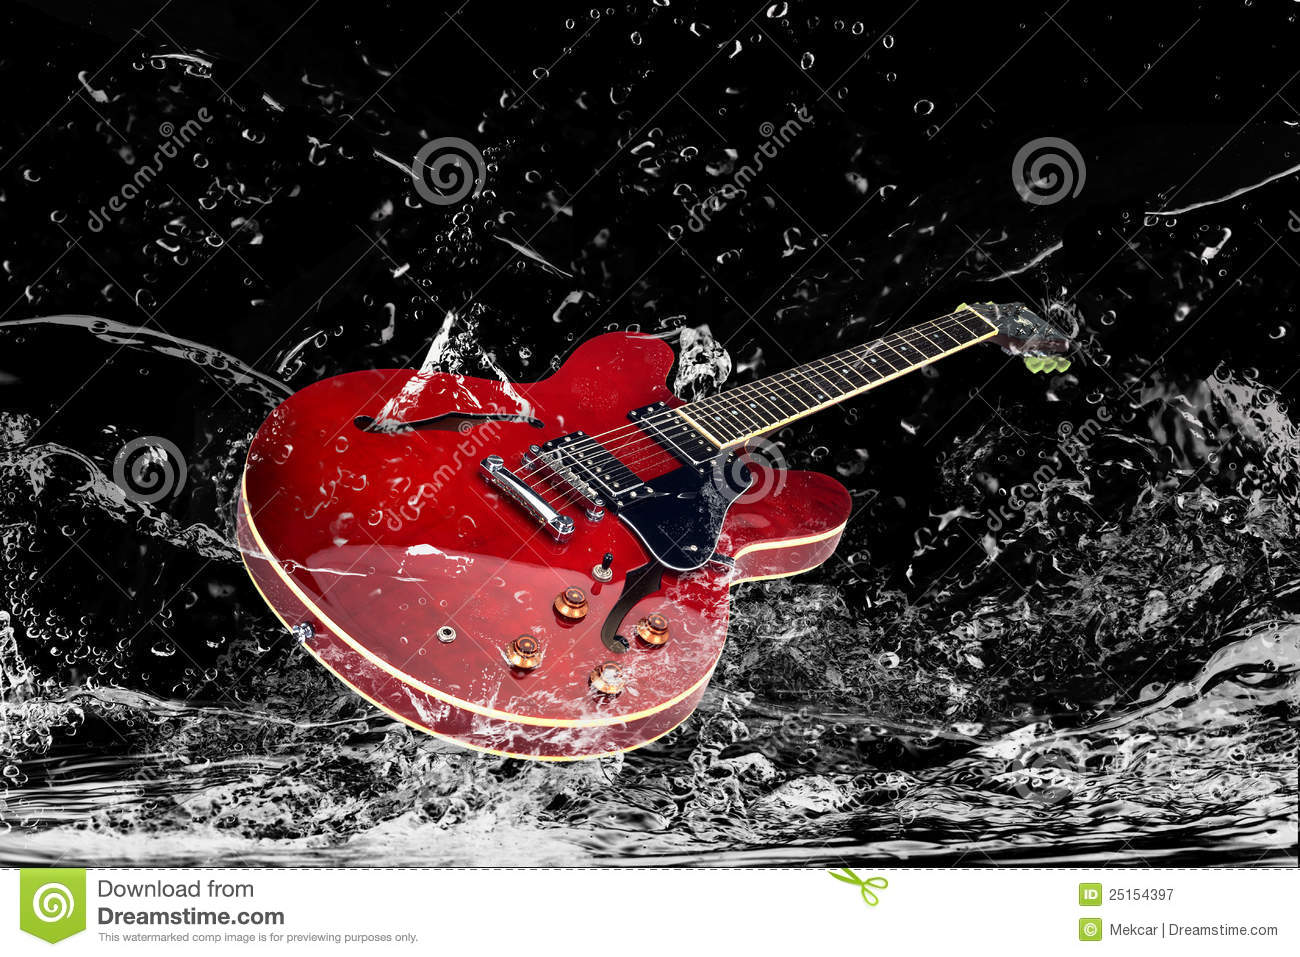 Electric Guitar In Water Royalty Free Stock Photography ... | 1300 x 957 jpeg 235kB